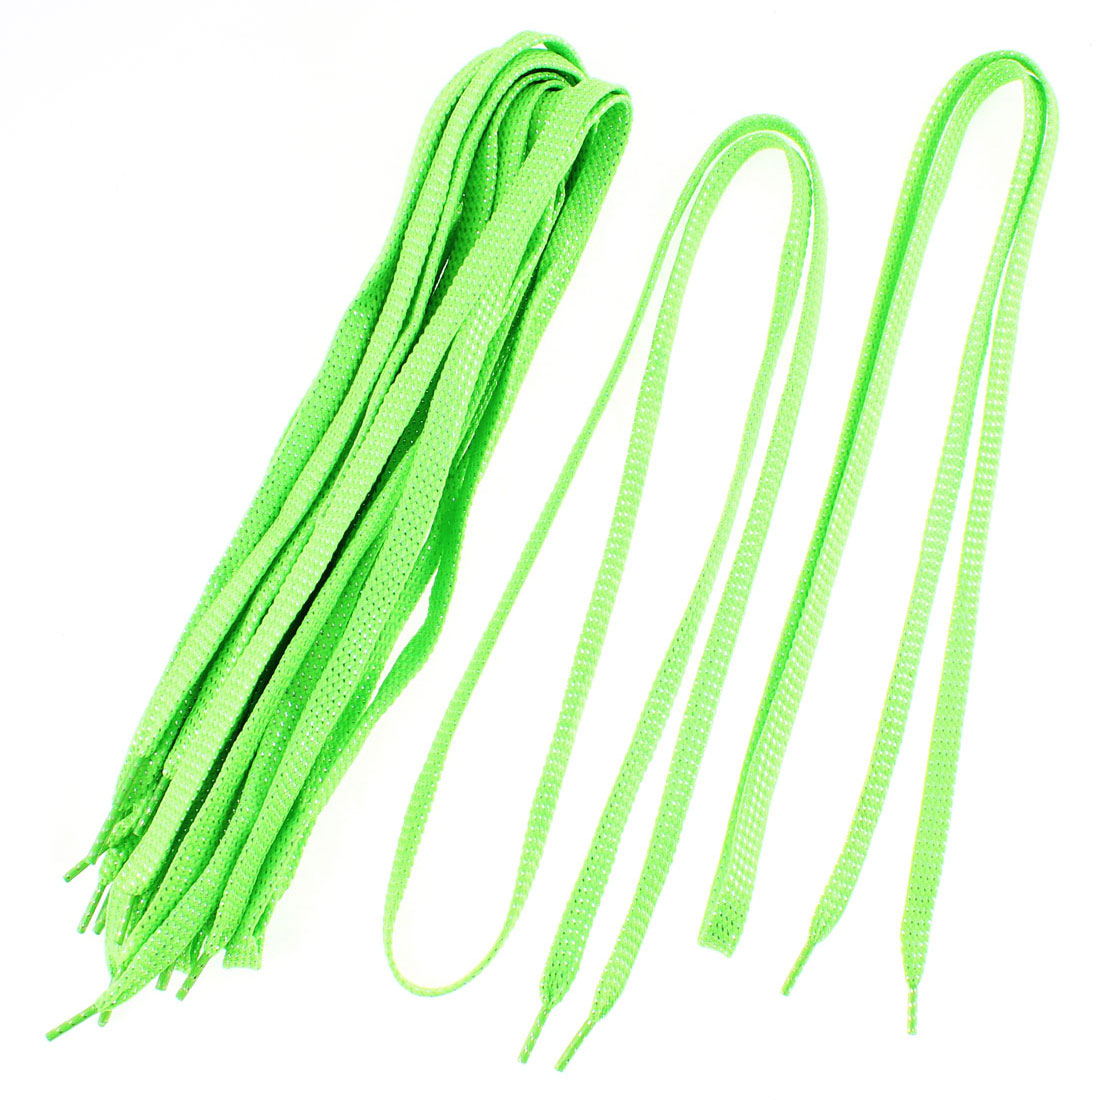 Sneakers Leisure Shoes Cotton Blend Flat Shoestring Shoelaces Green 5 Pairs